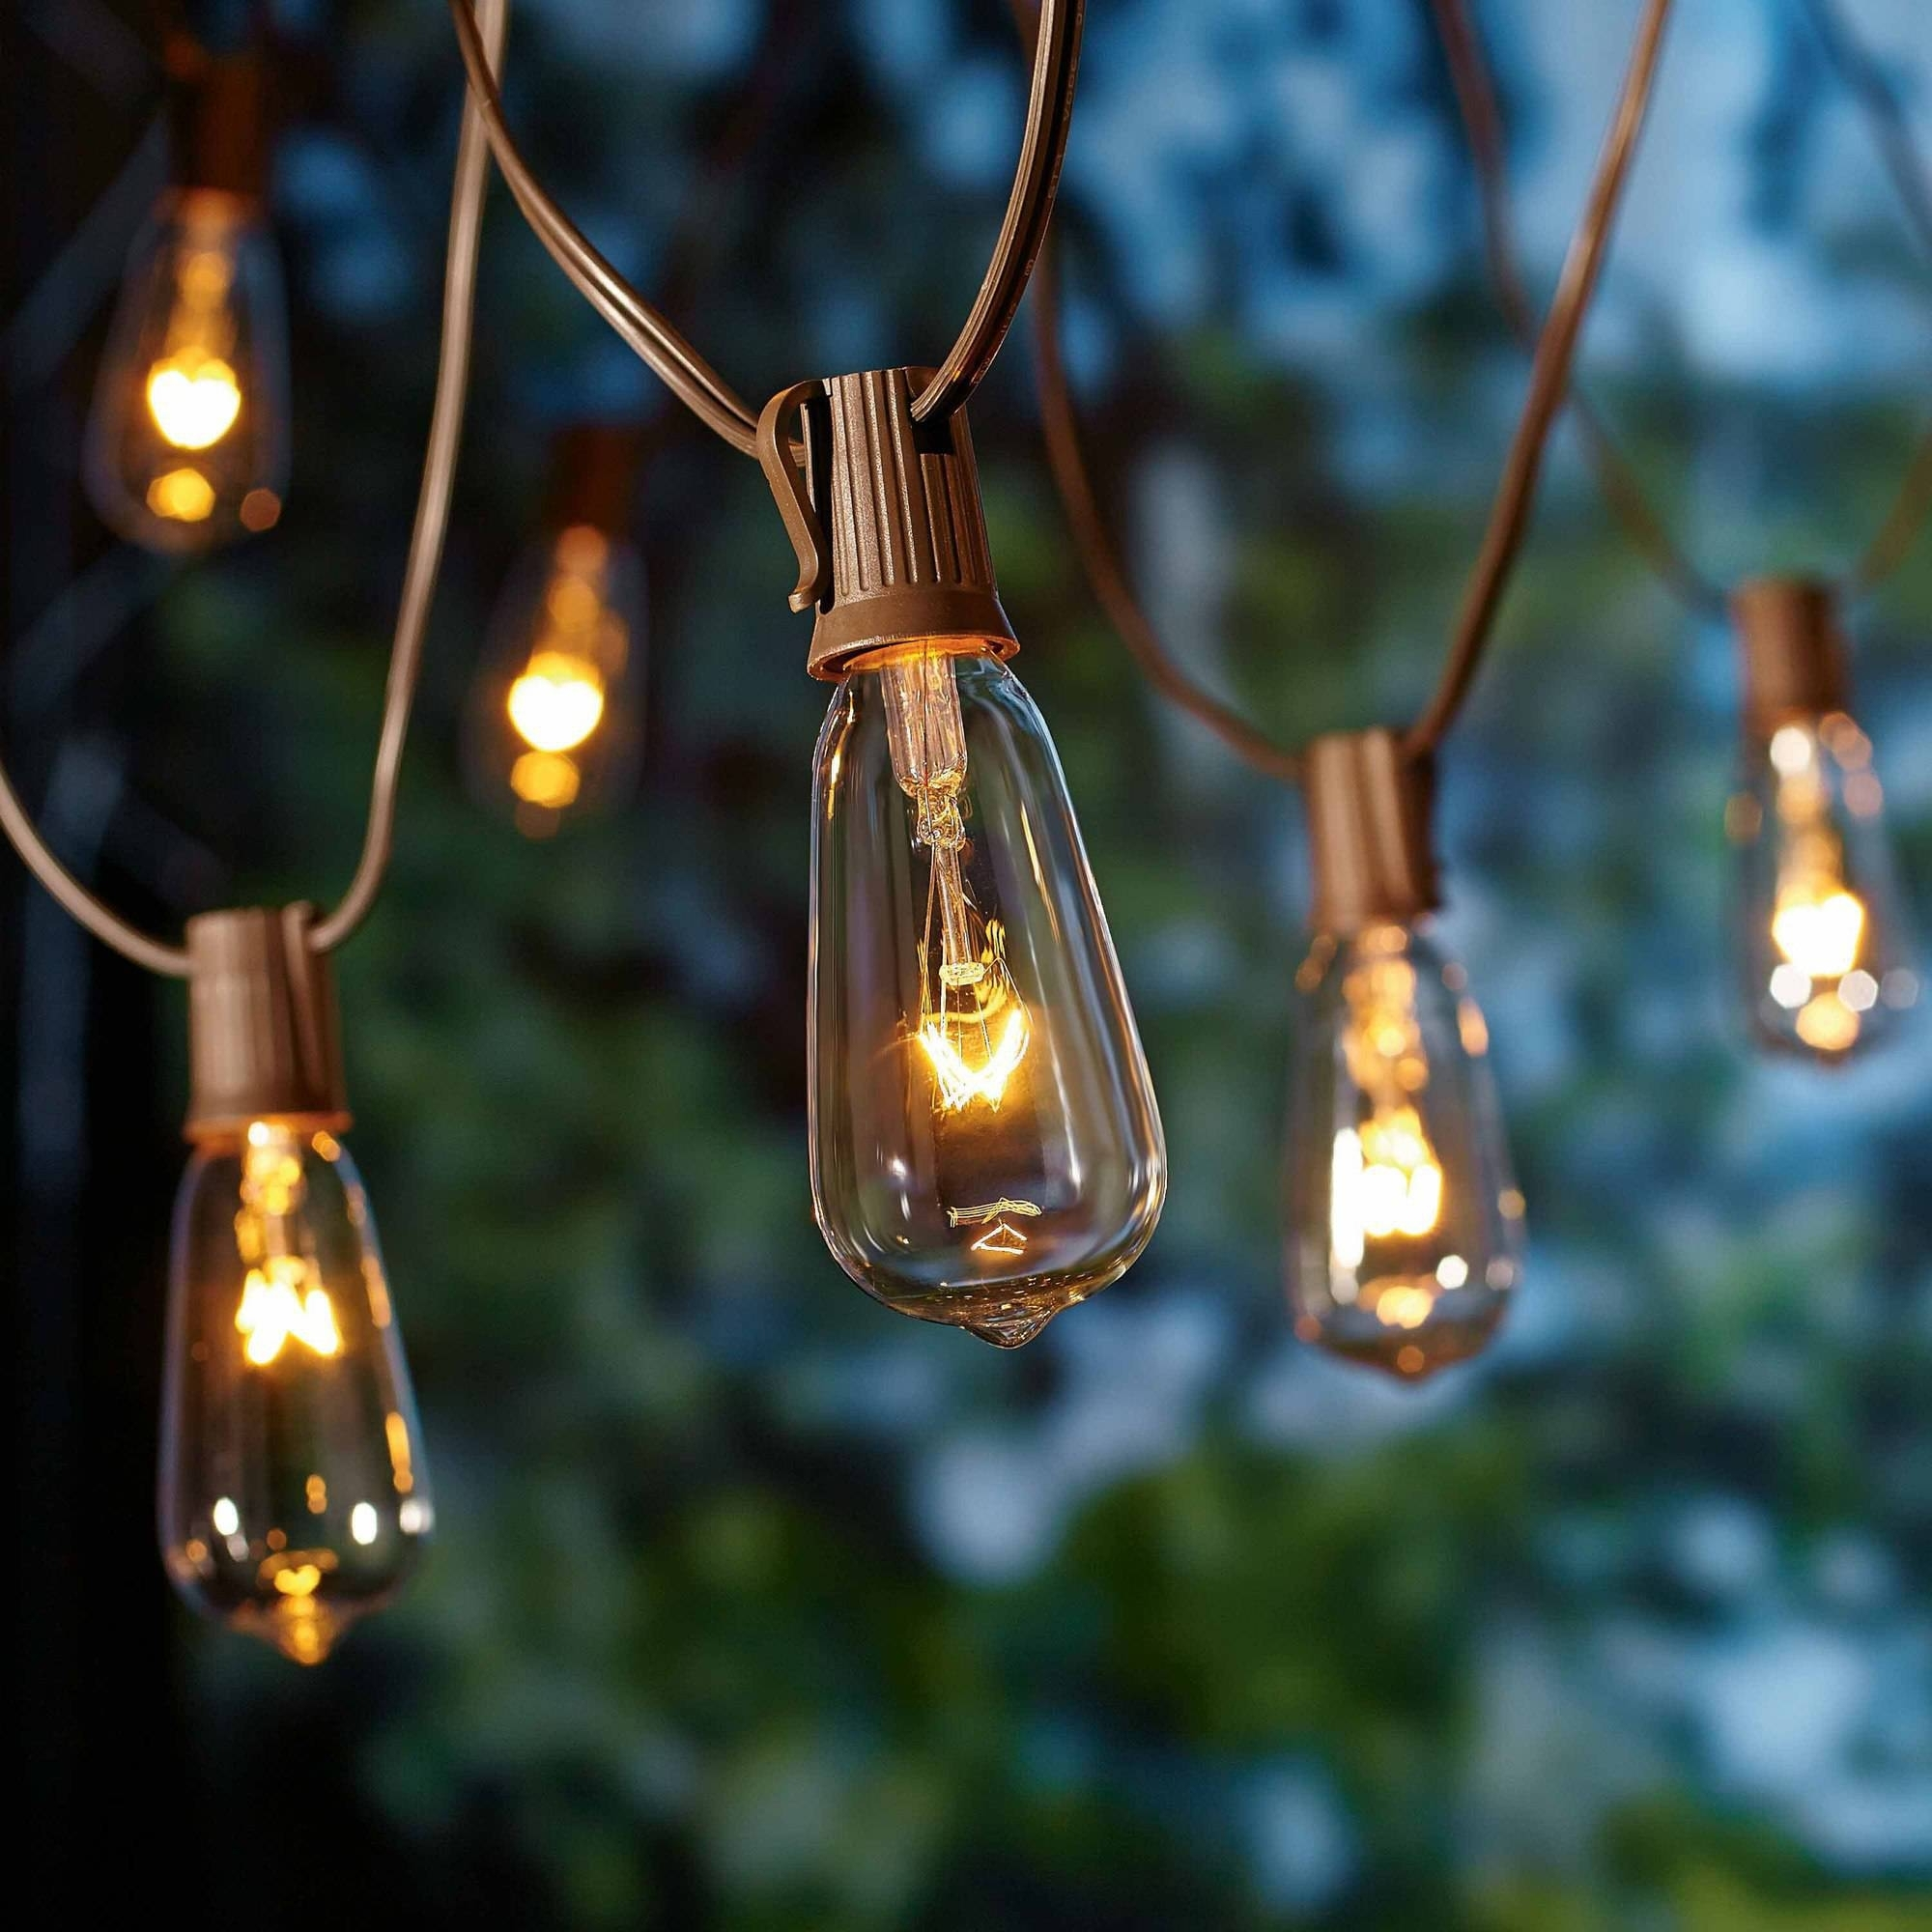 Better Homes And Gardens Outdoor Glass Edison String Lights, 10 Throughout Most Popular Outdoor String Lanterns (View 9 of 20)